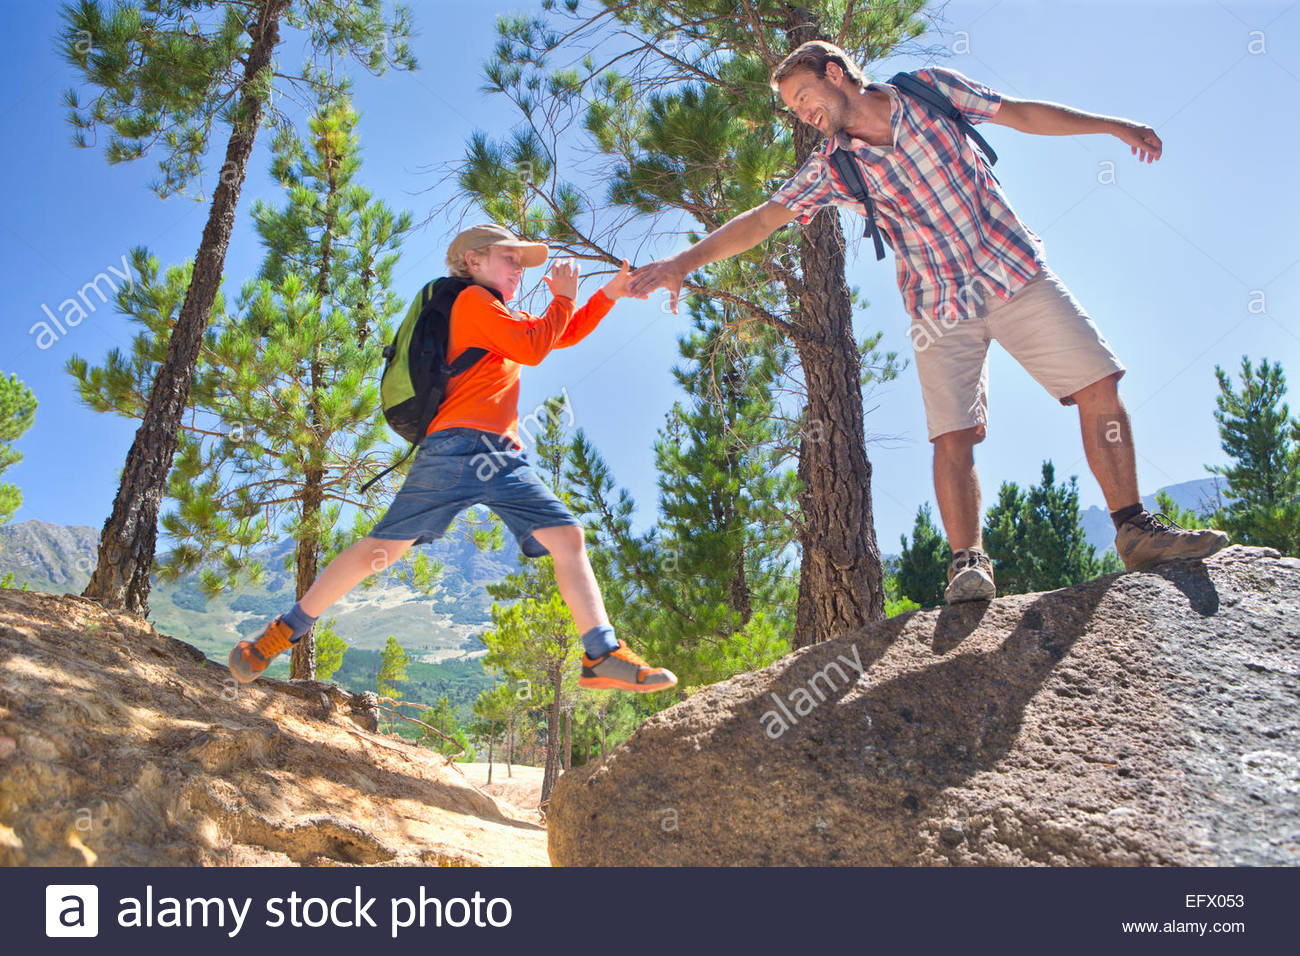 Father helping son climb, on mountain path - Stock Image